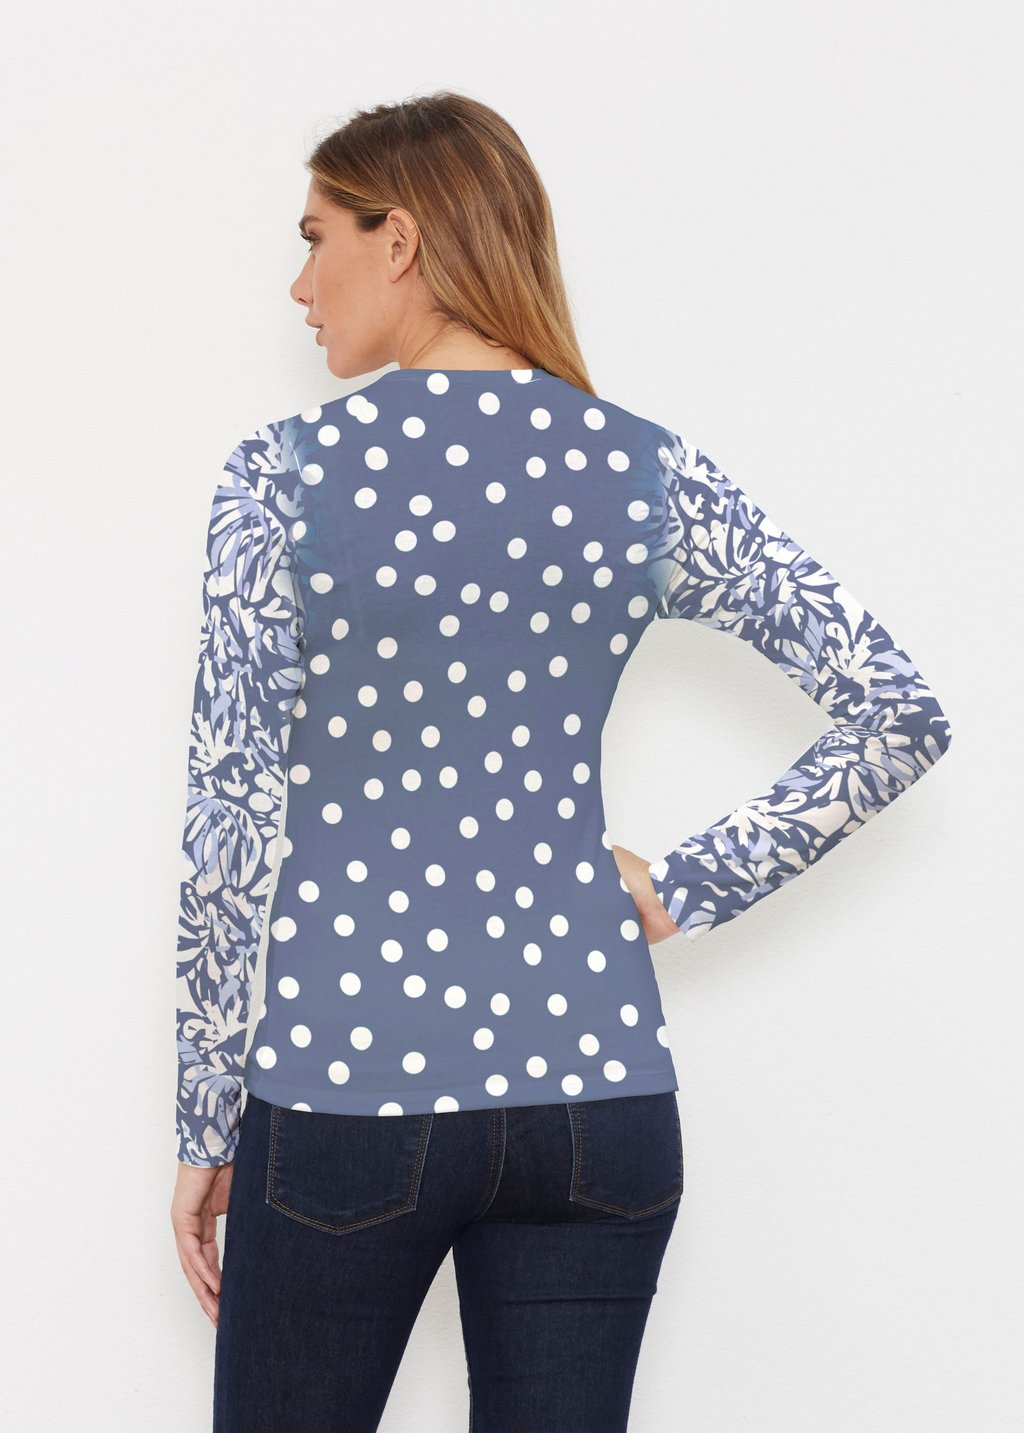 whimsy7879-LSV-B_1024x_crop_top